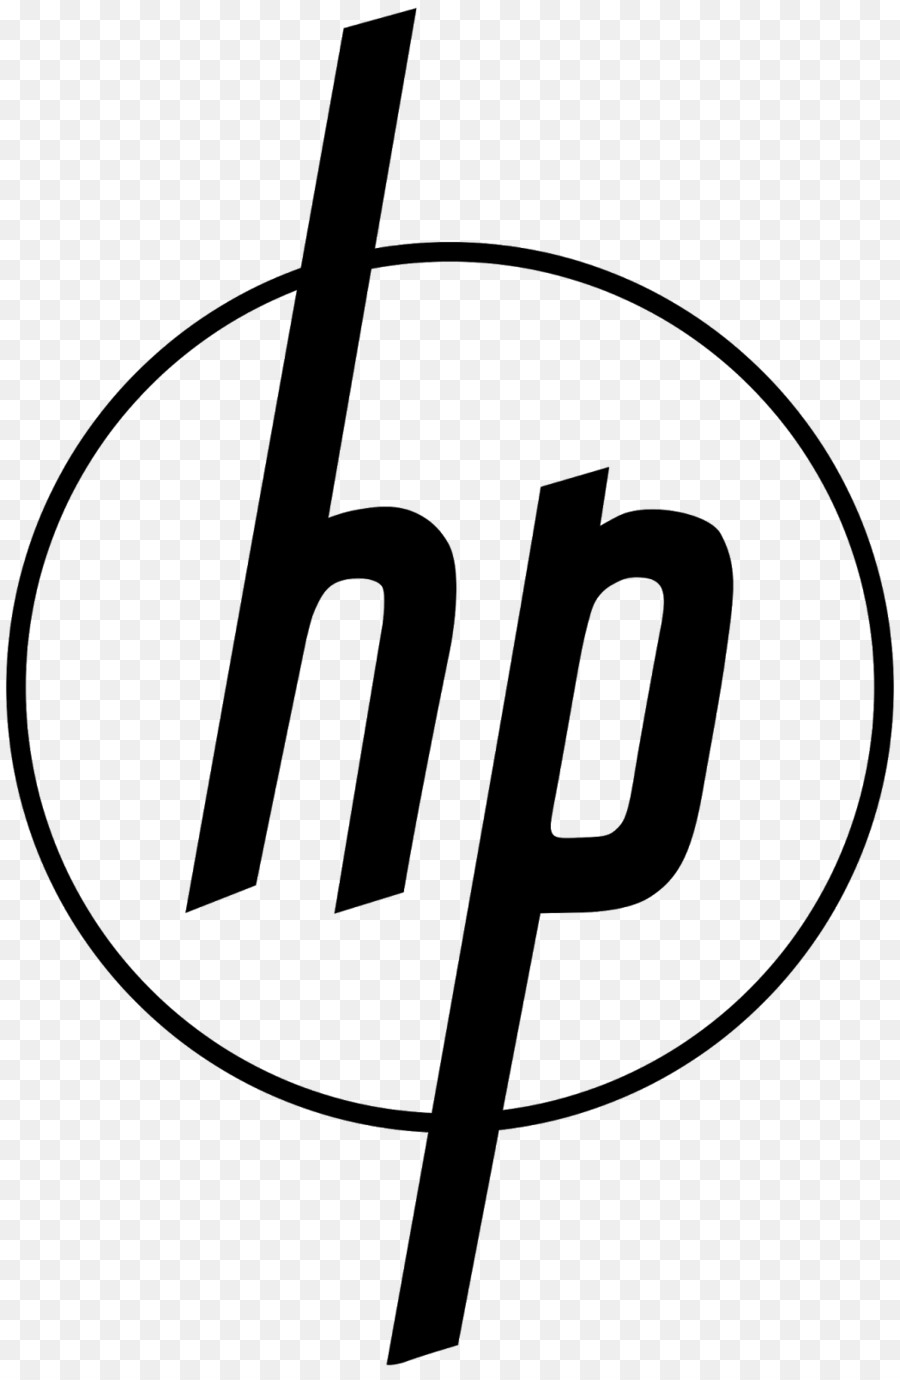 Hewlett Packard Dell Logo Hp Pavilion Hewlett Packard Enterprise